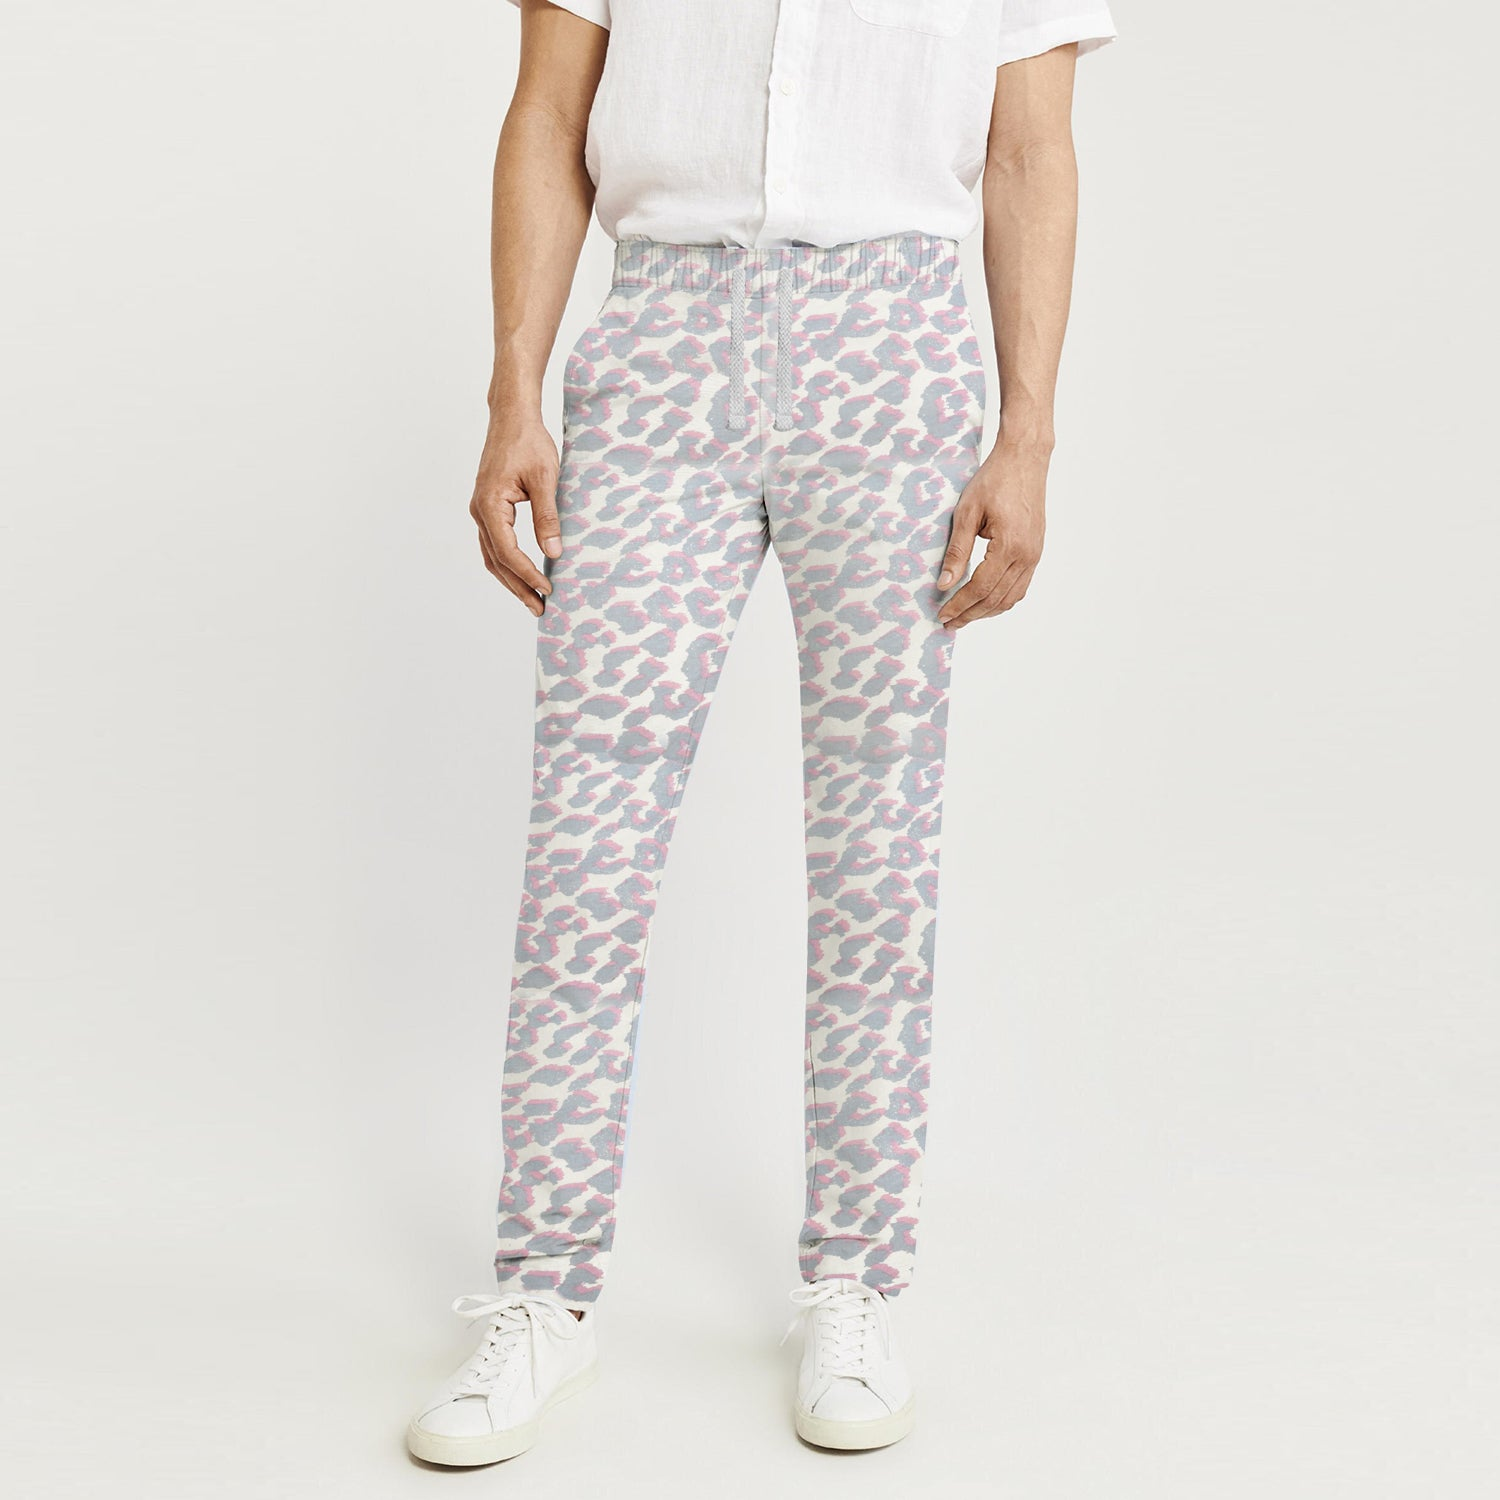 Zara Man Slim Fit Flannel Trouser For Men-Off White with Grey & Pink Print-BE9804